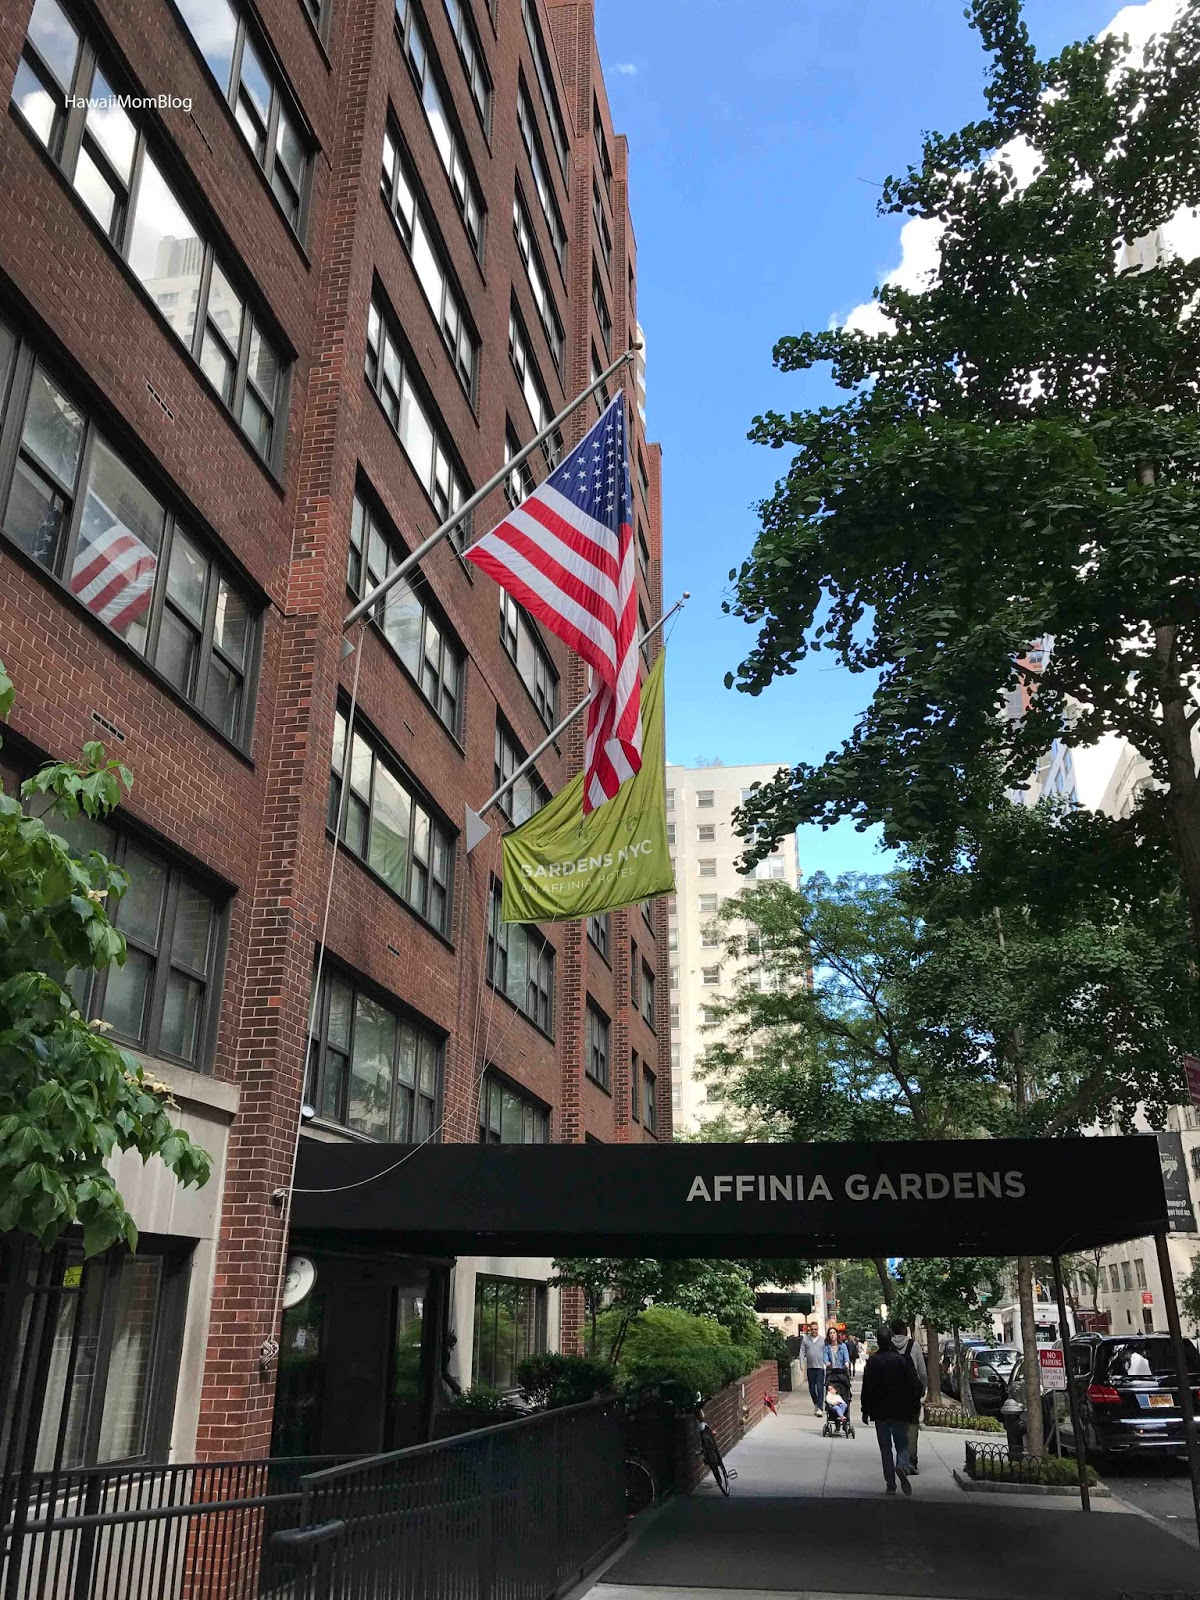 Hawaii Mom Blog Visit New York Gardens NYC Perfect for Families